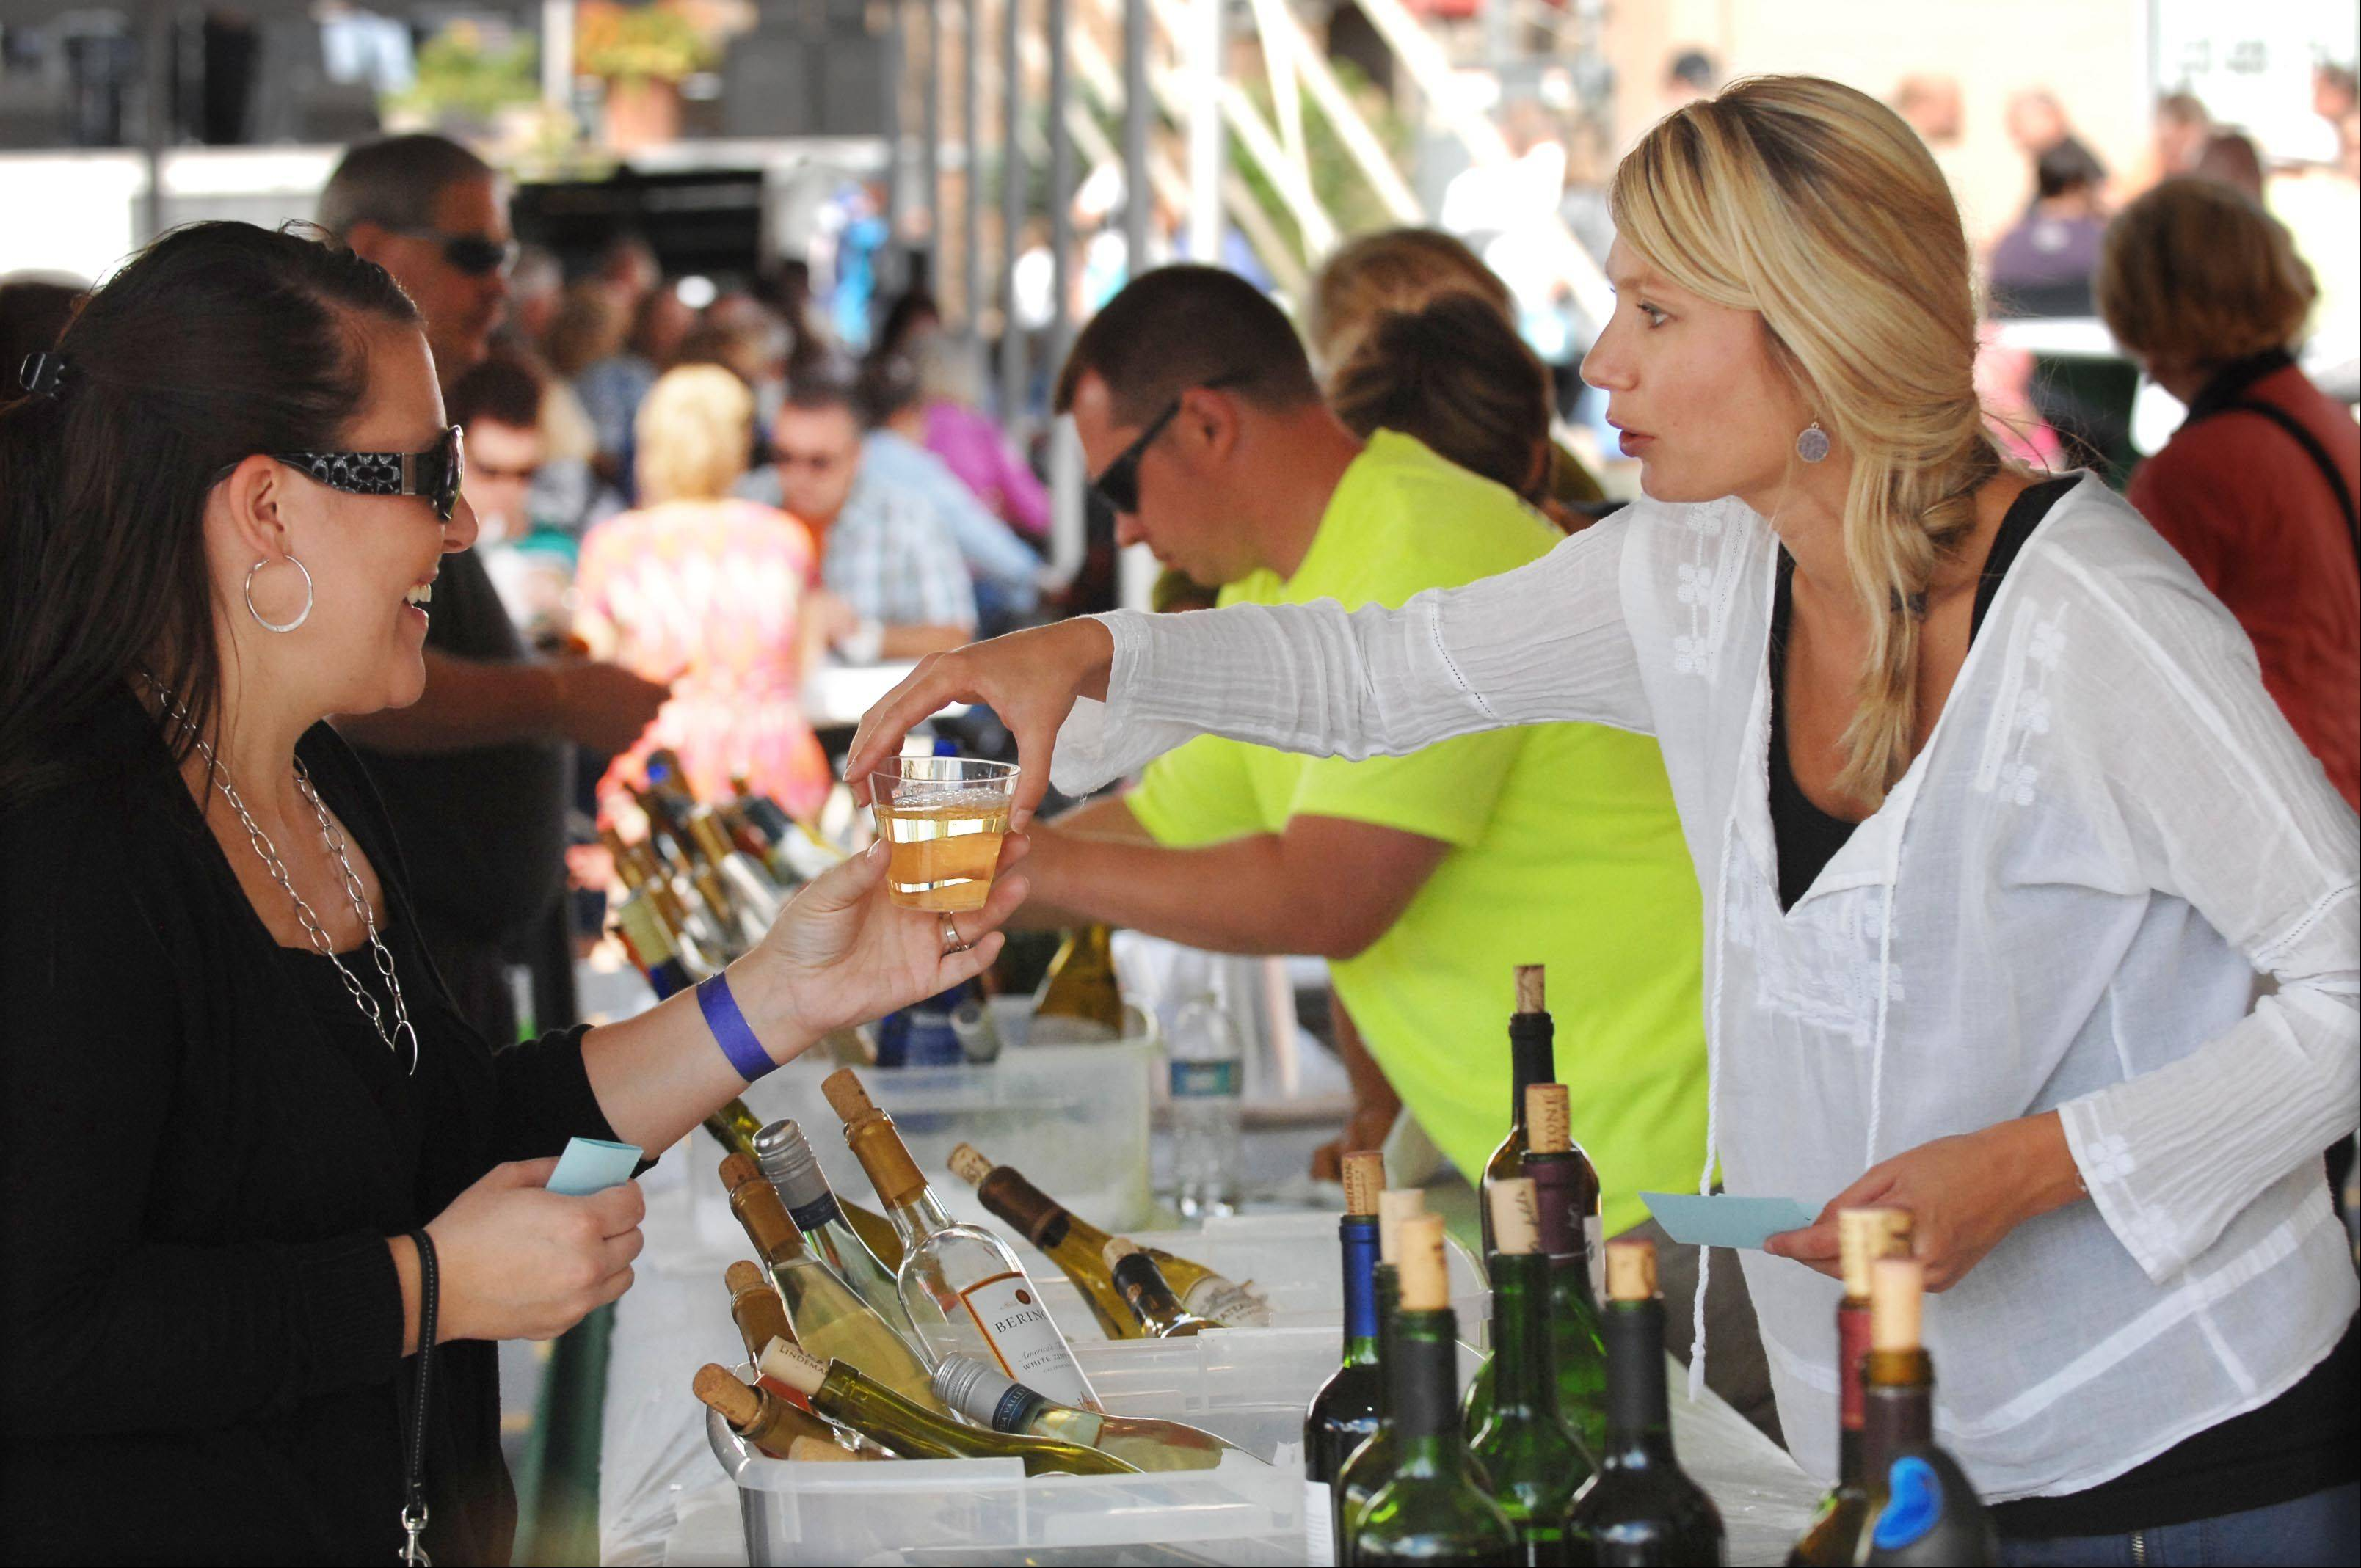 Natalya Villa serves wine at last year's Festival of the Vine in downtown Geneva. Visitors to the wine and food tents first must purchase tickets, $1 each, which they can use to buy wine and food.